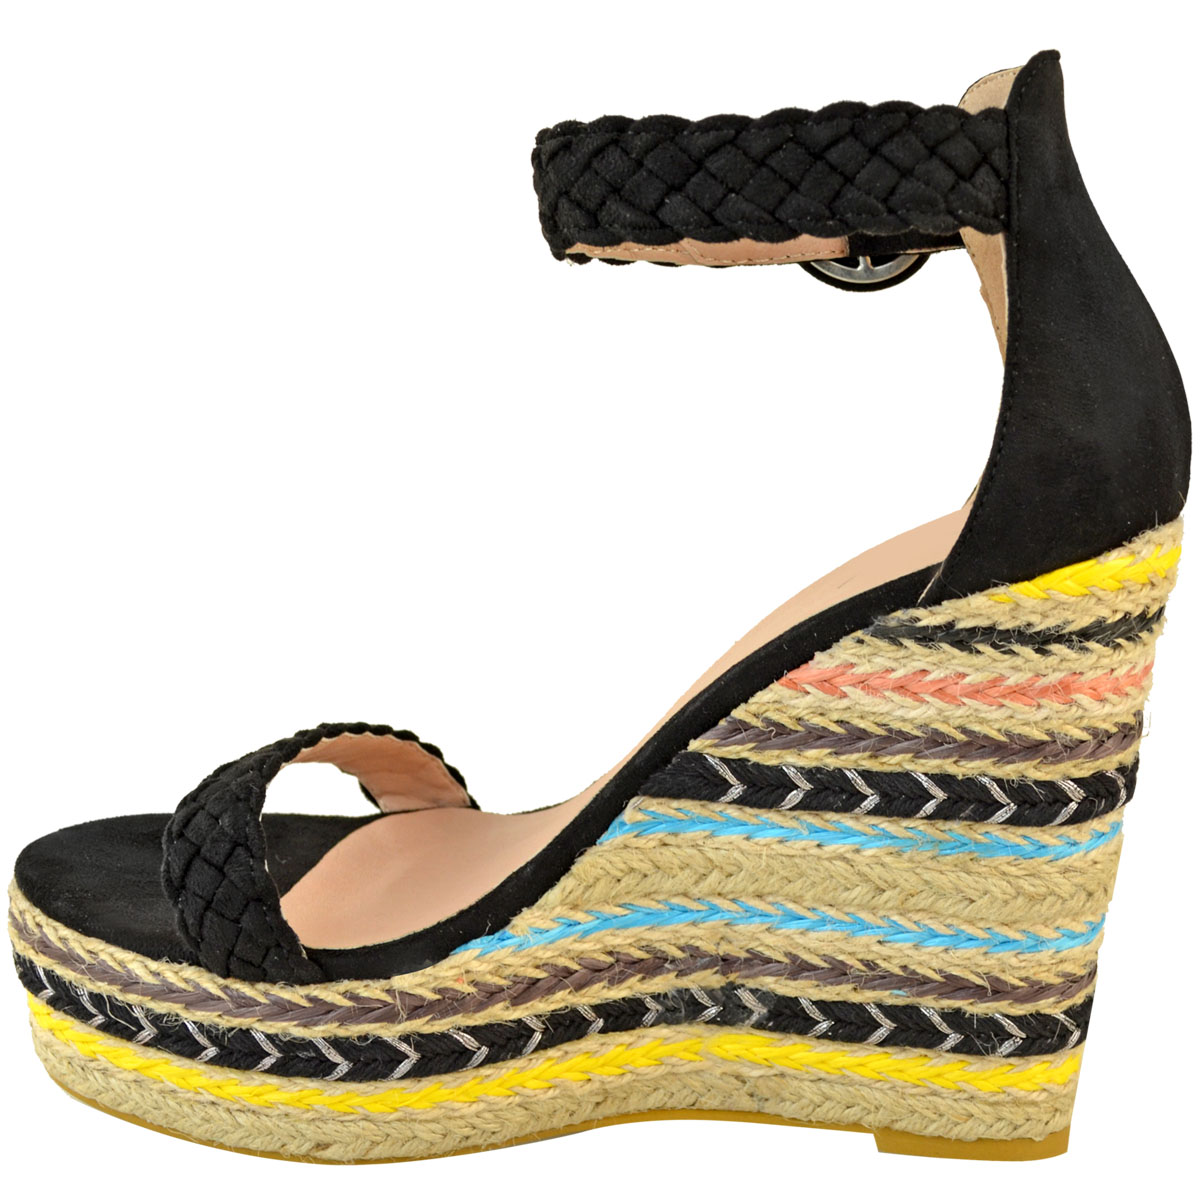 Womens-Ladies-Black-Wedge-Platforms-Sandals-High-Heels-Party-Summer-Shoes-Size thumbnail 5